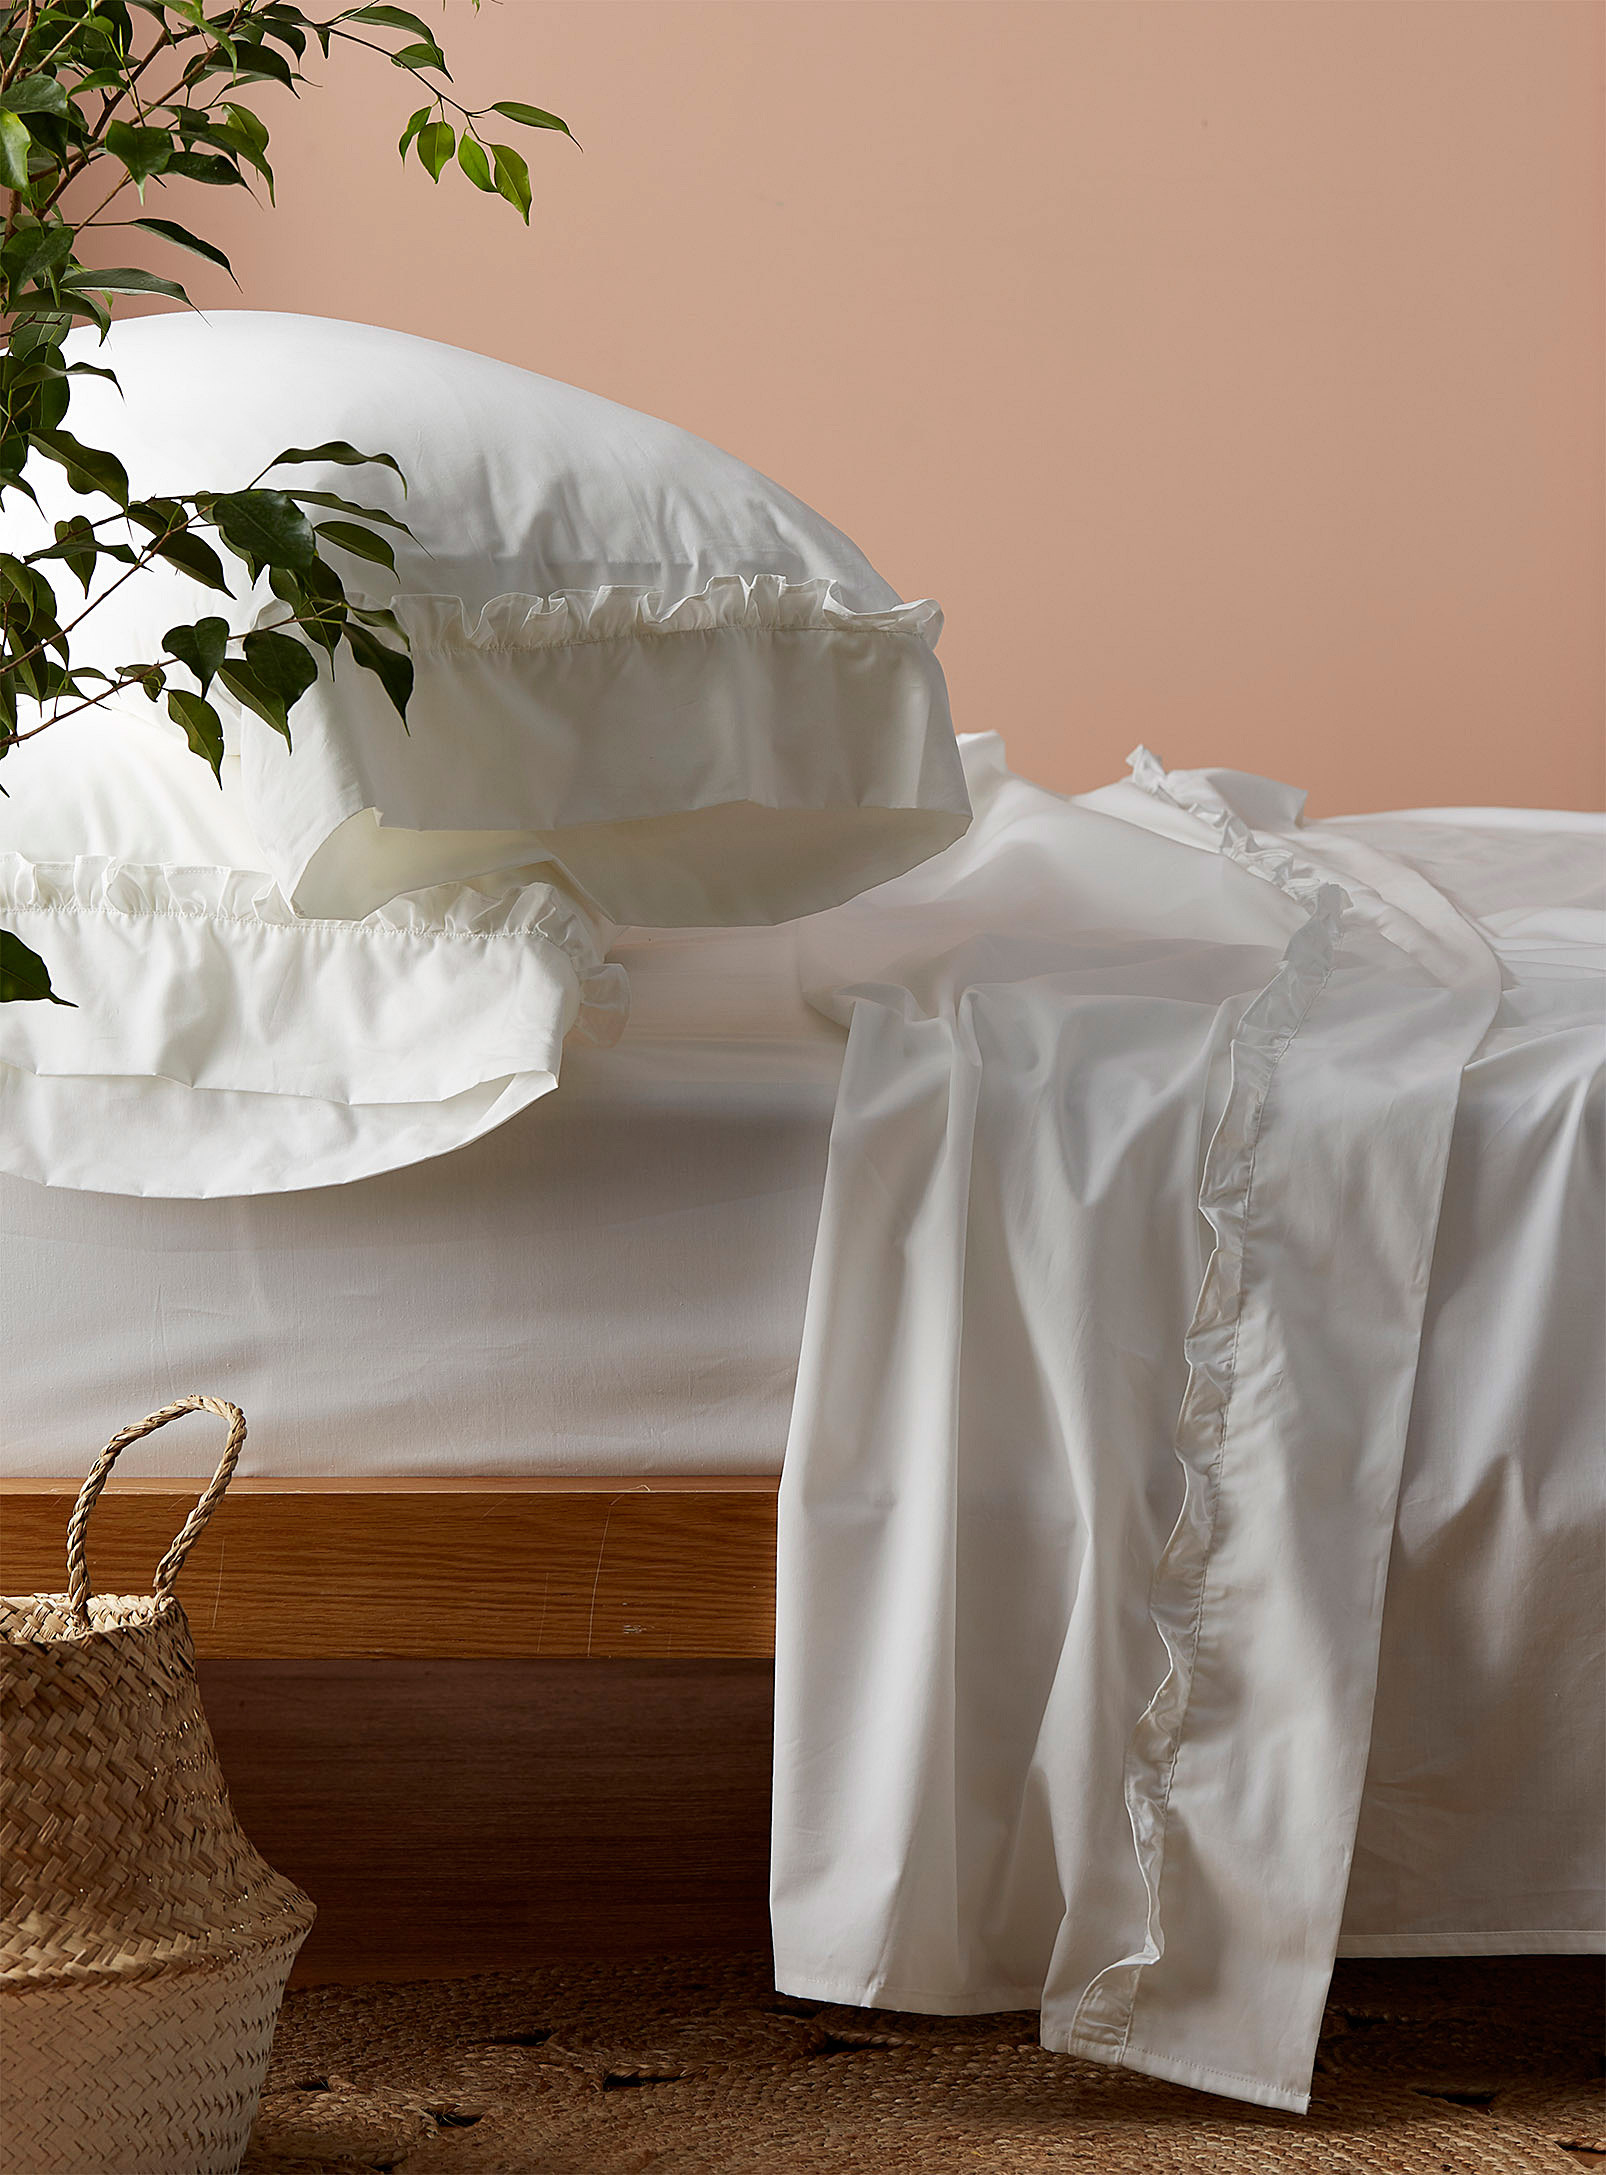 A bed neatly made with plain sheets that have a ruffled trim at the top